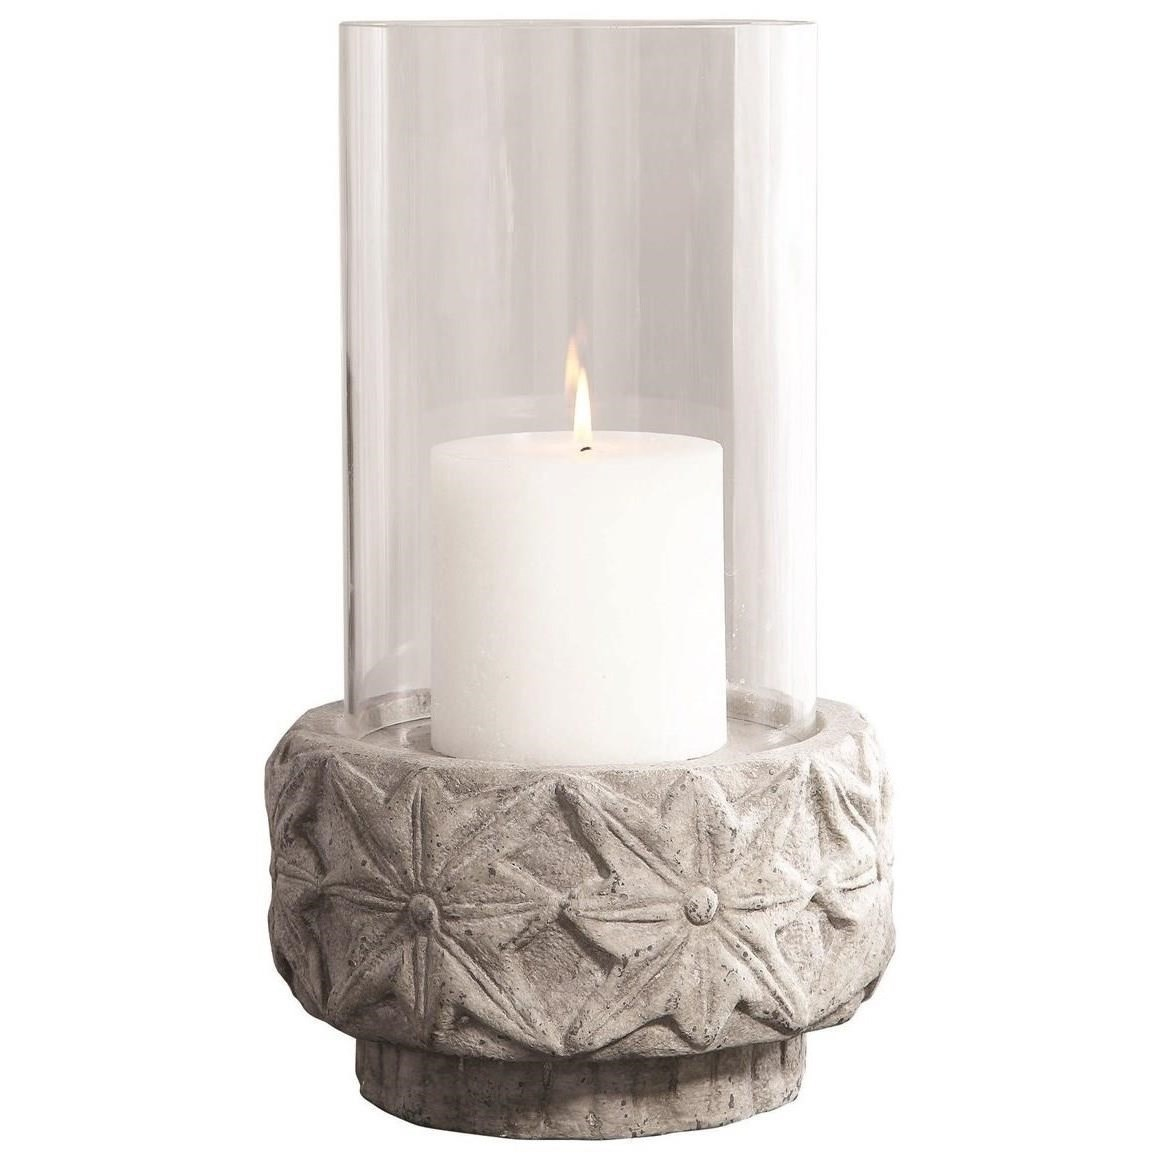 Accessories - Candle Holders Capistrano Concrete Candleholder by Uttermost at Mueller Furniture